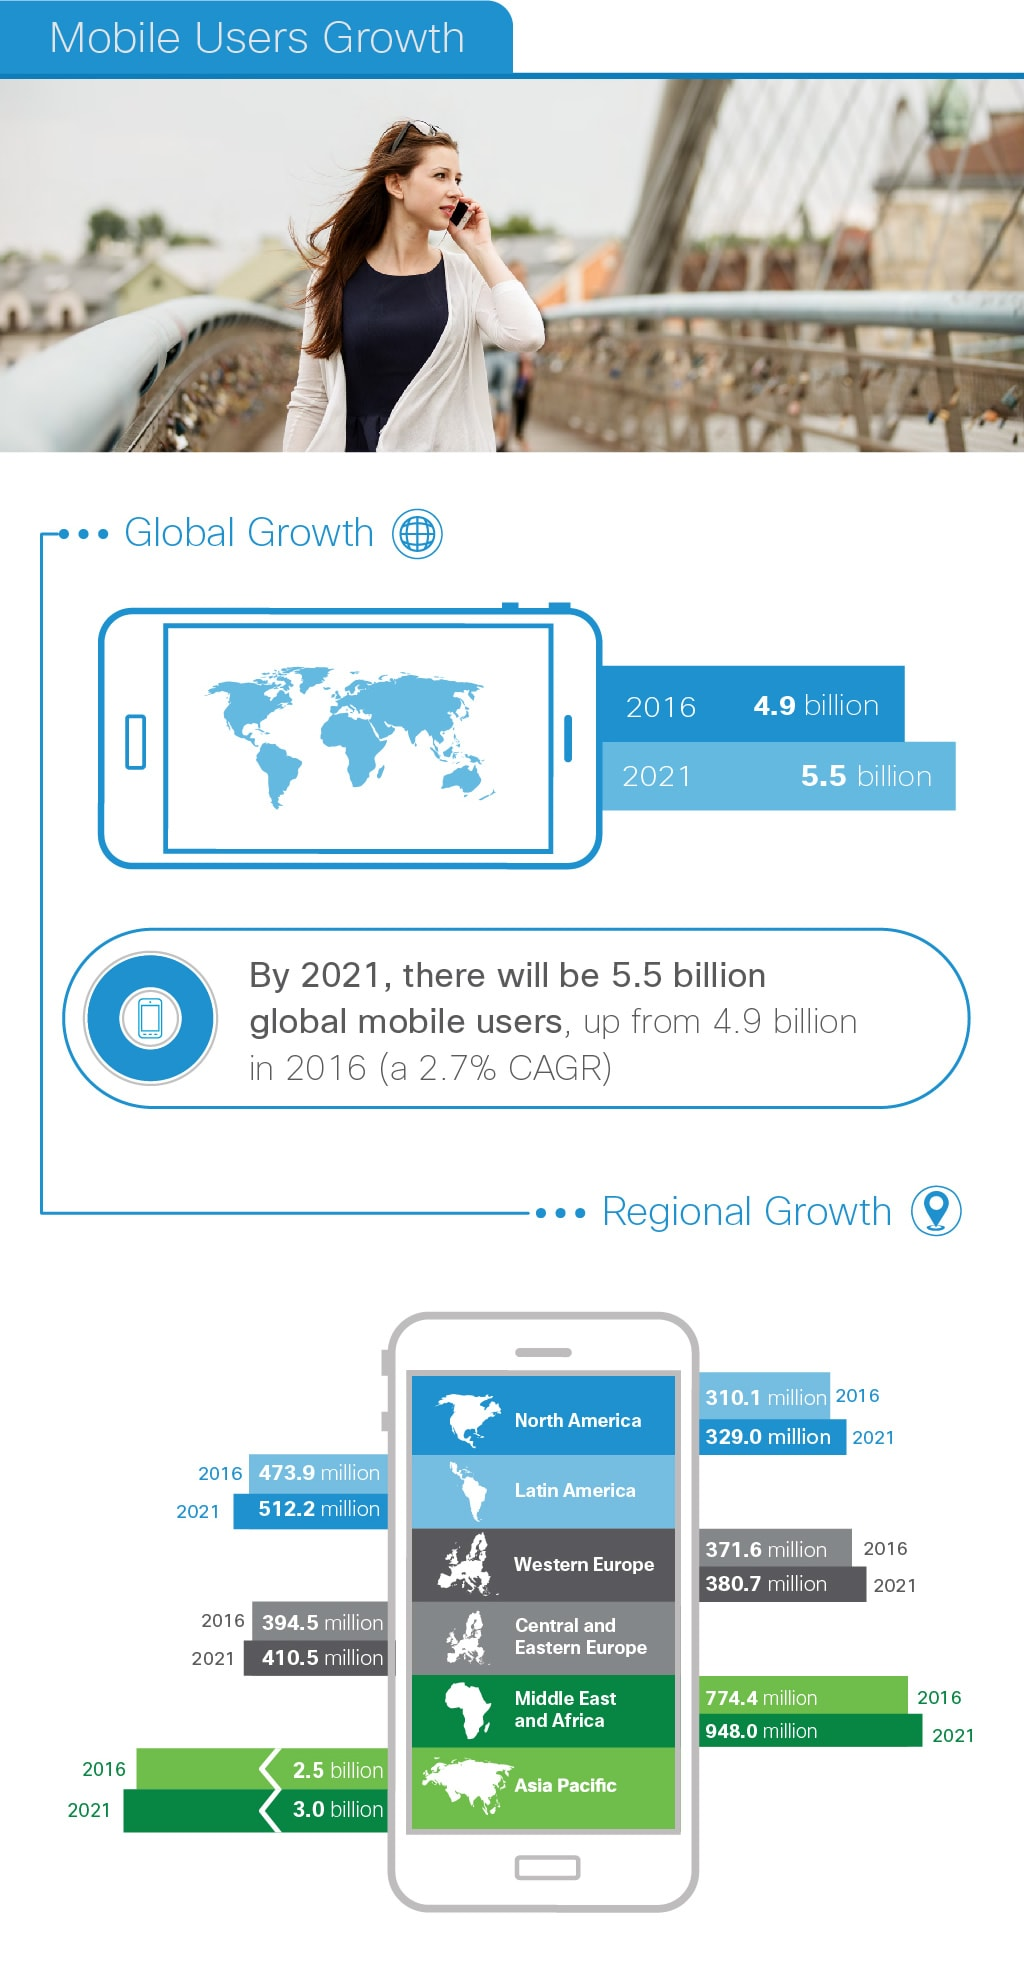 Mobile Users Growth